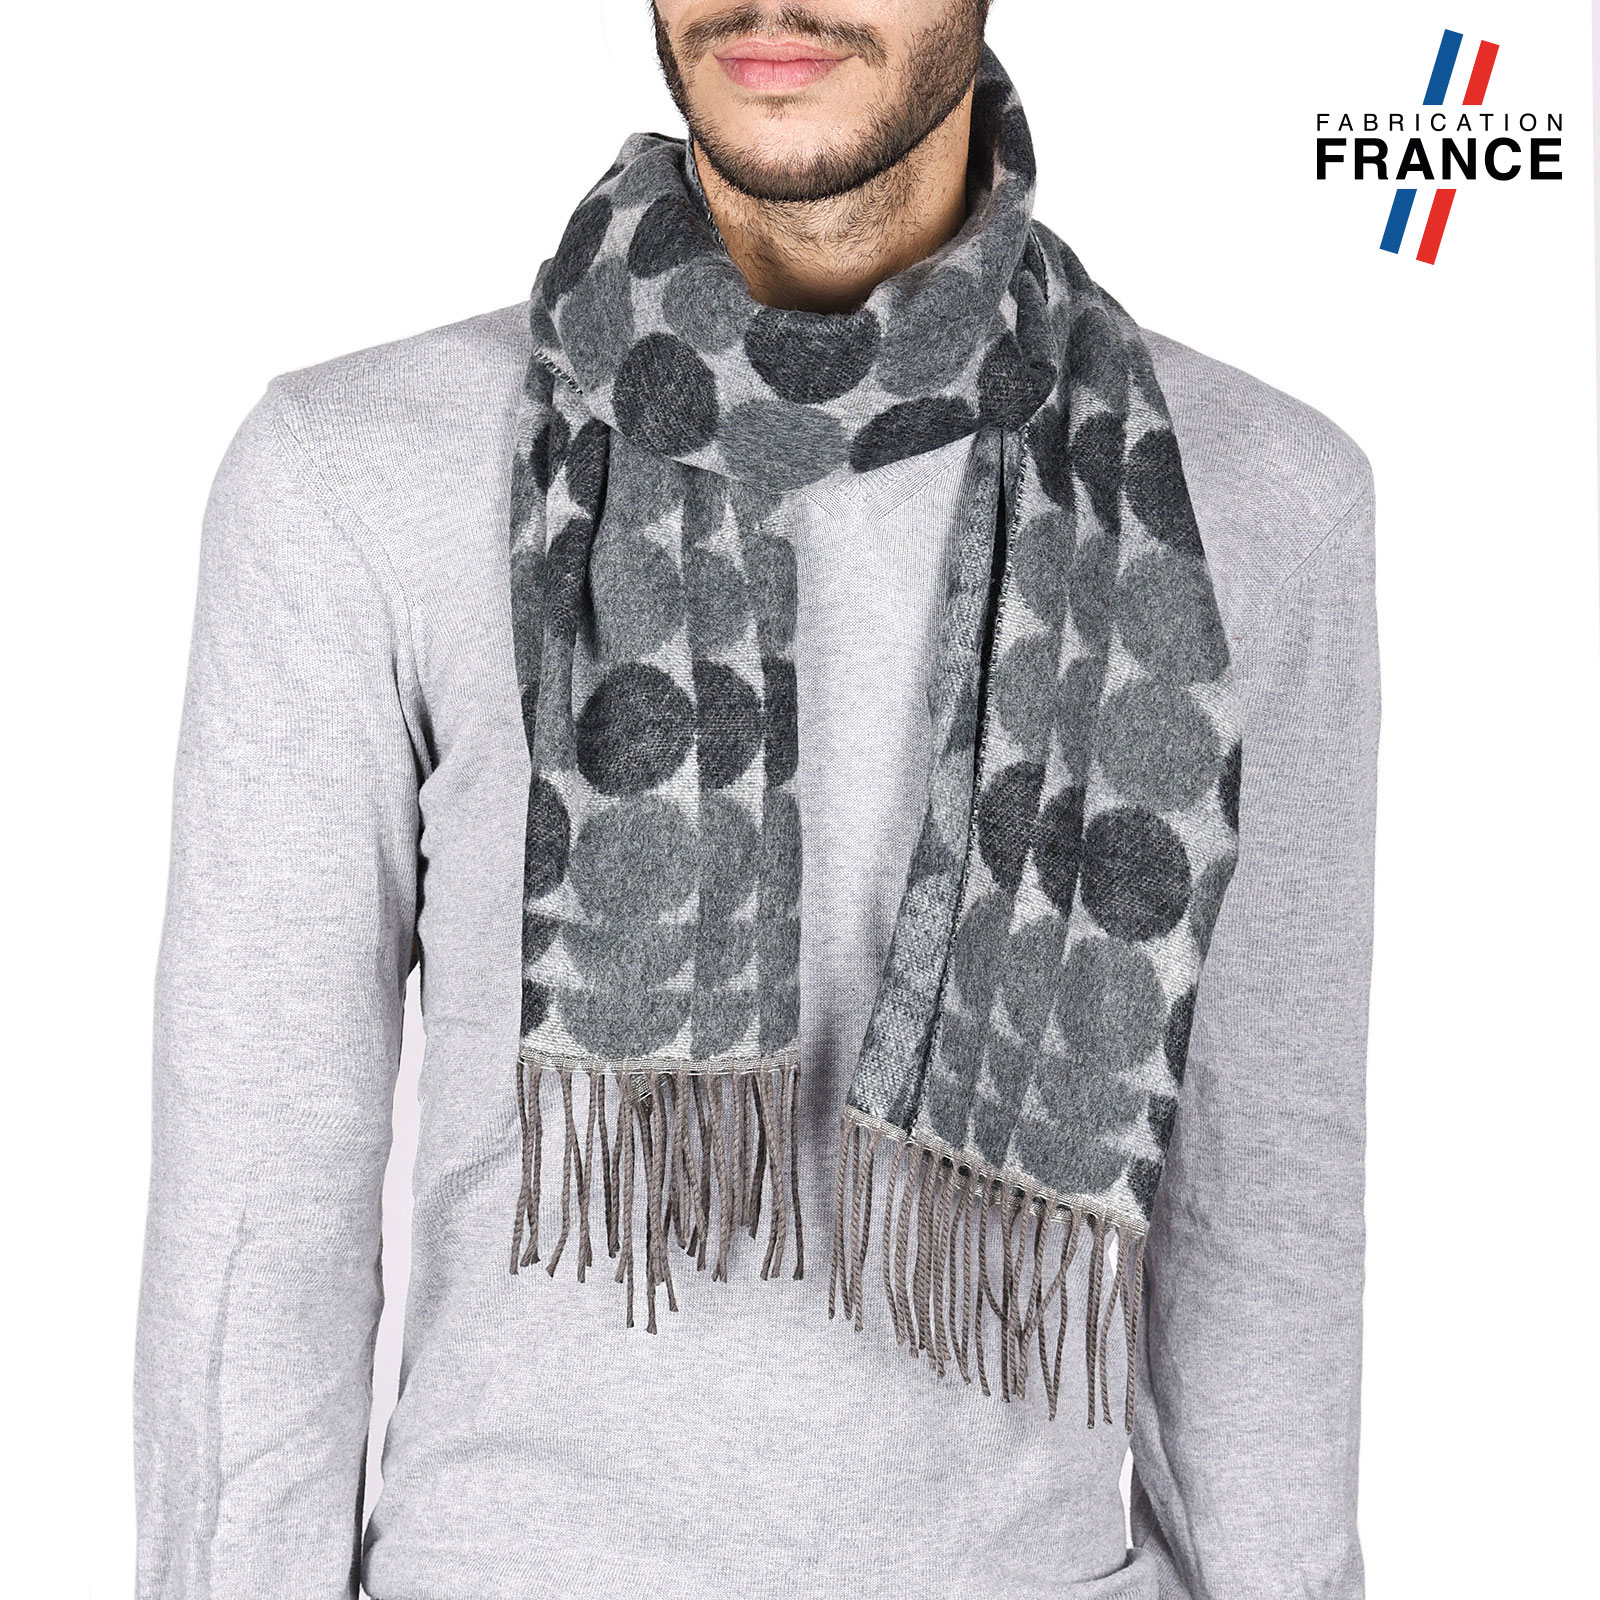 AT-04411-VH16-1-echarpe-homme-gros-pois-anthracite-grise